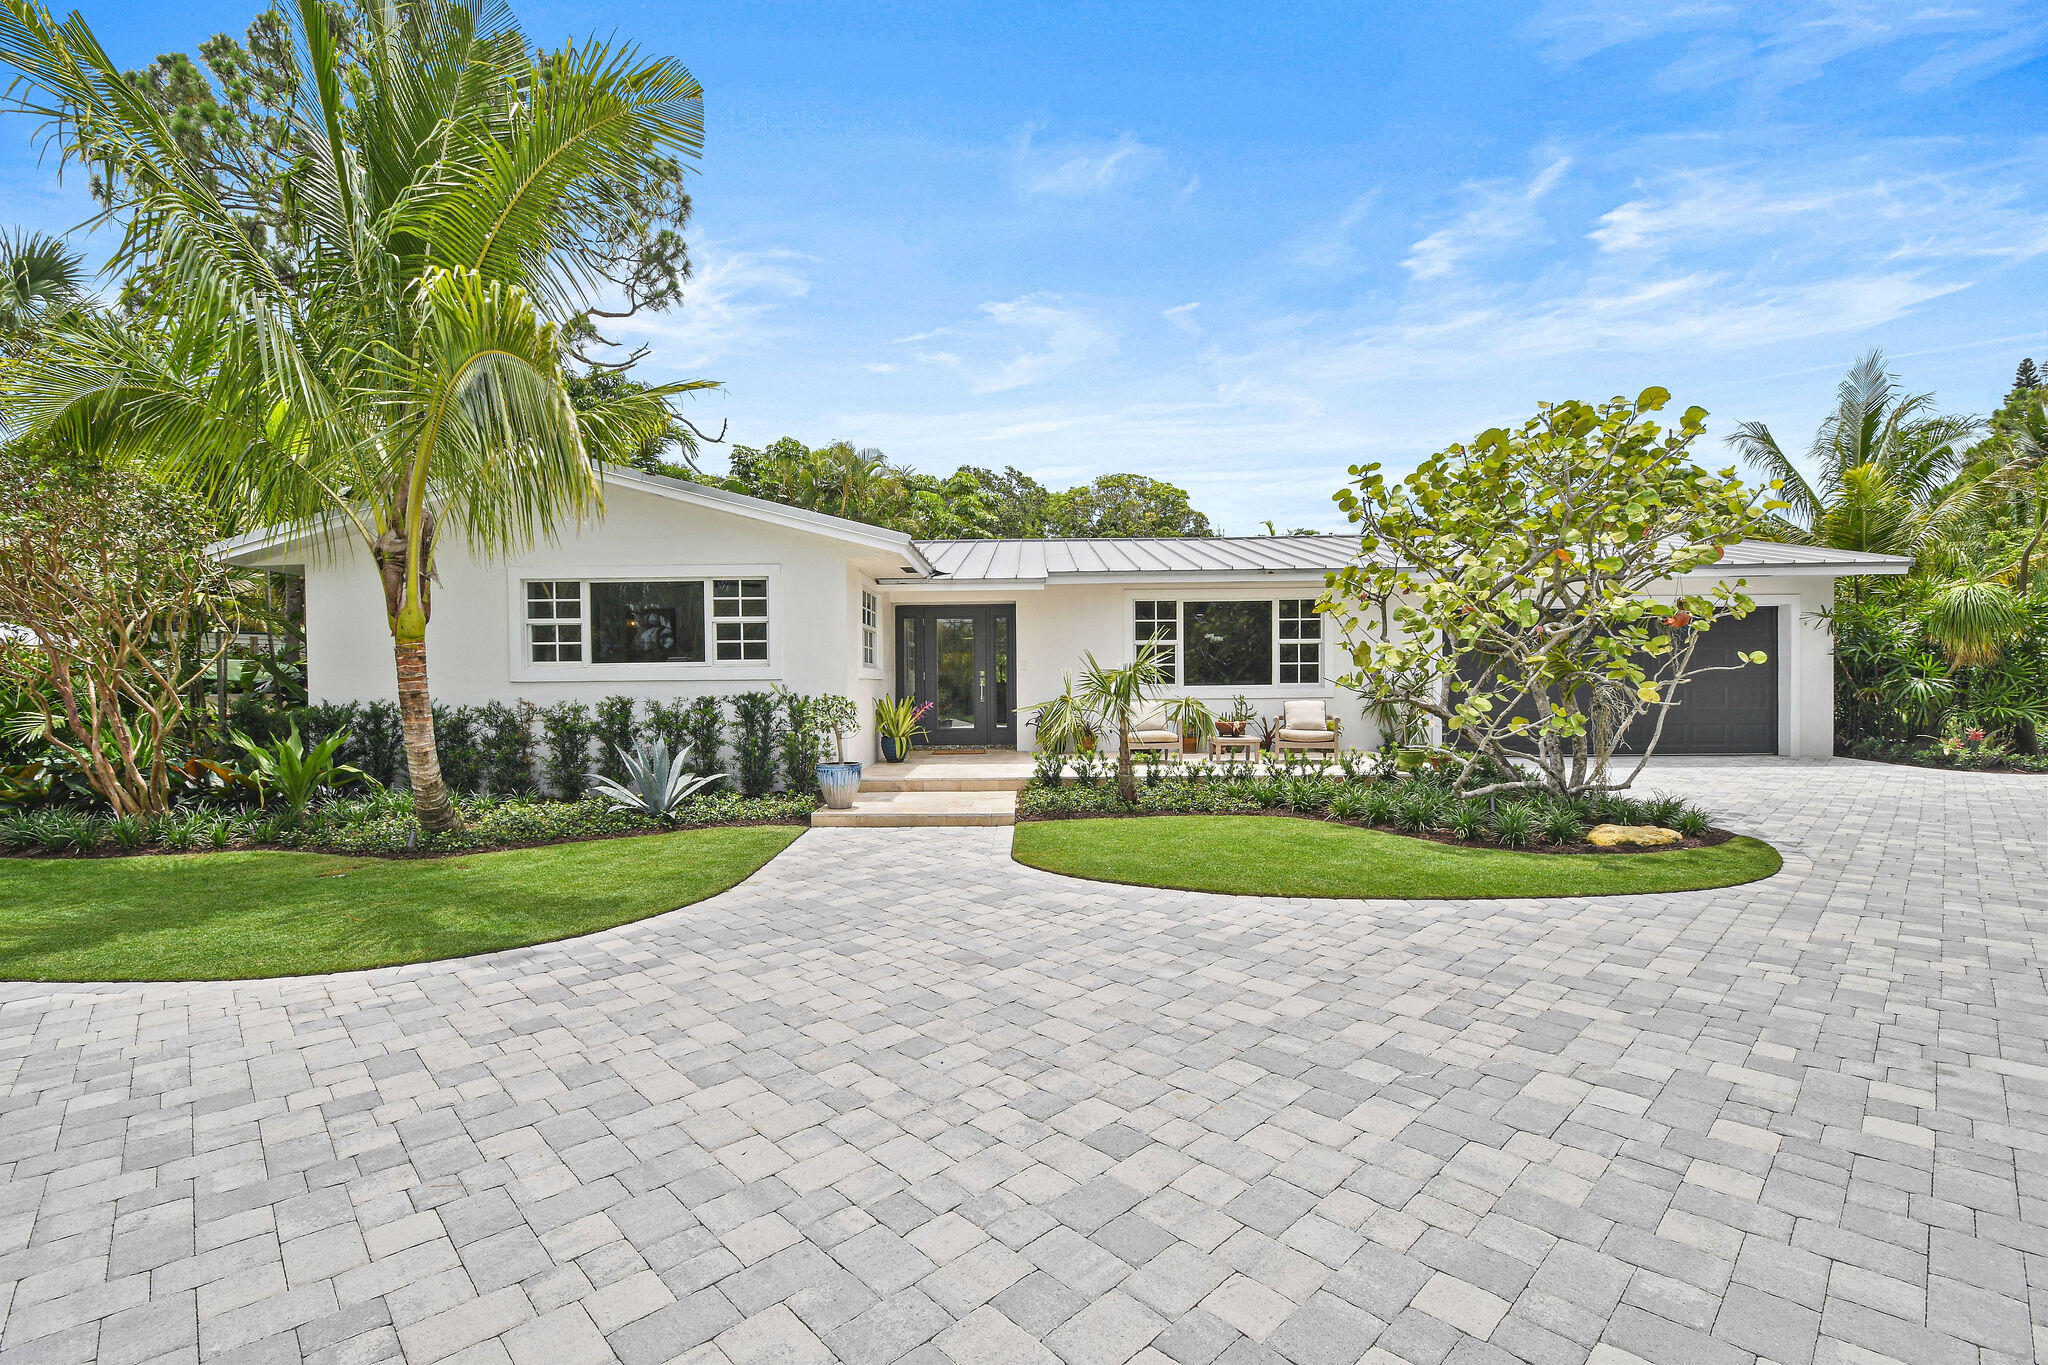 An unprecedented offering in Tequesta; Fully remodeled, 100% move in ready home on one of the largest dry lot parcels in Northern Palm Beach county on the east side. Endless possibilities with this spectacular 3/4 acre property. Build your private compound, tucked away from higher density communities. A truly rare opportunity to be in town and close to beach access, boat ramps, shopping, restaurants and more while situated on a massive parcel. A step into Old Florida as you drive down PineTree Dr, tranquil and hidden, this one is sure to not disappoint.